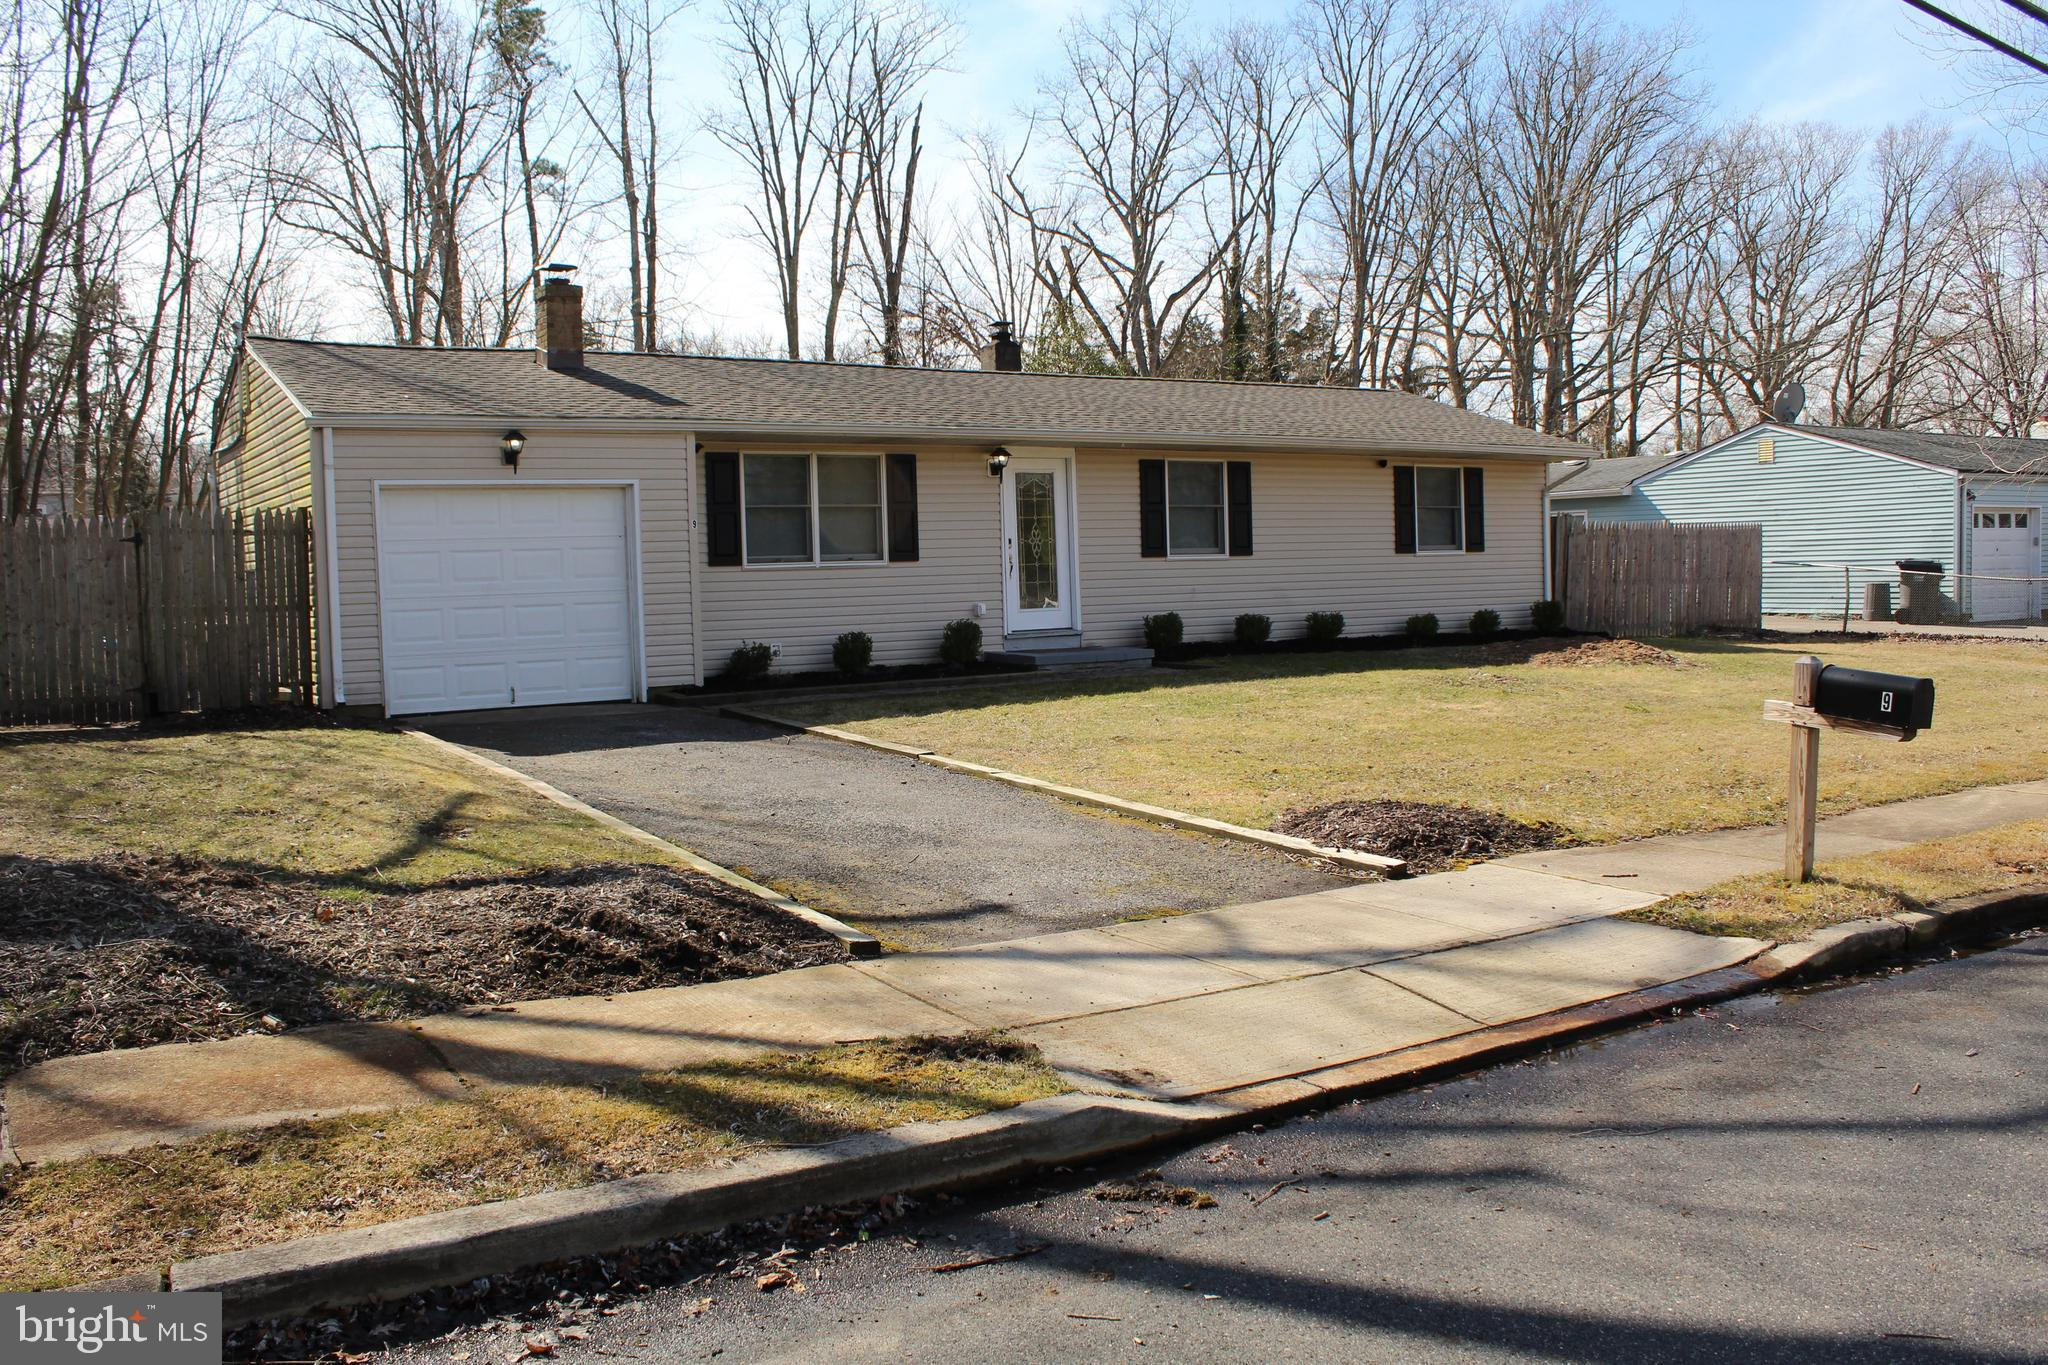 9 REDWOOD ROAD, HOWELL, NJ 07731